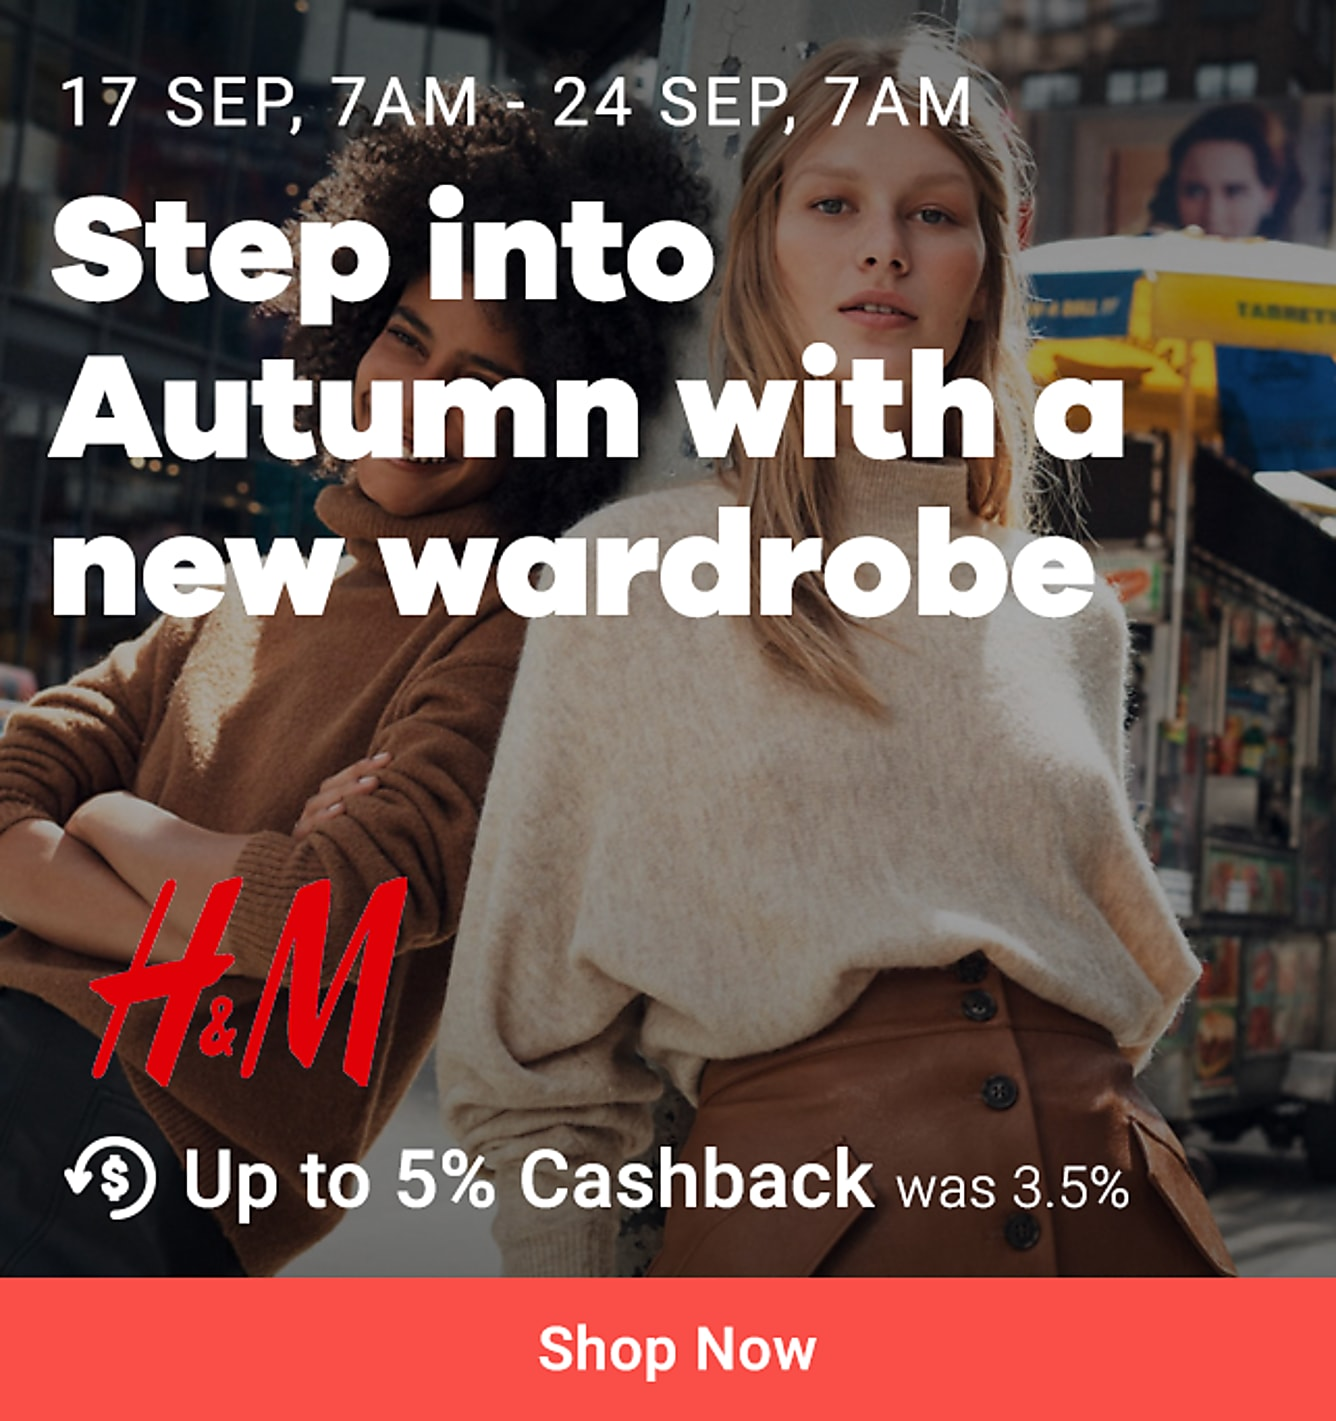 New launch: H&M 17 sep 7am - 24 sep 7am 5% upsized cb (was 3.5%)